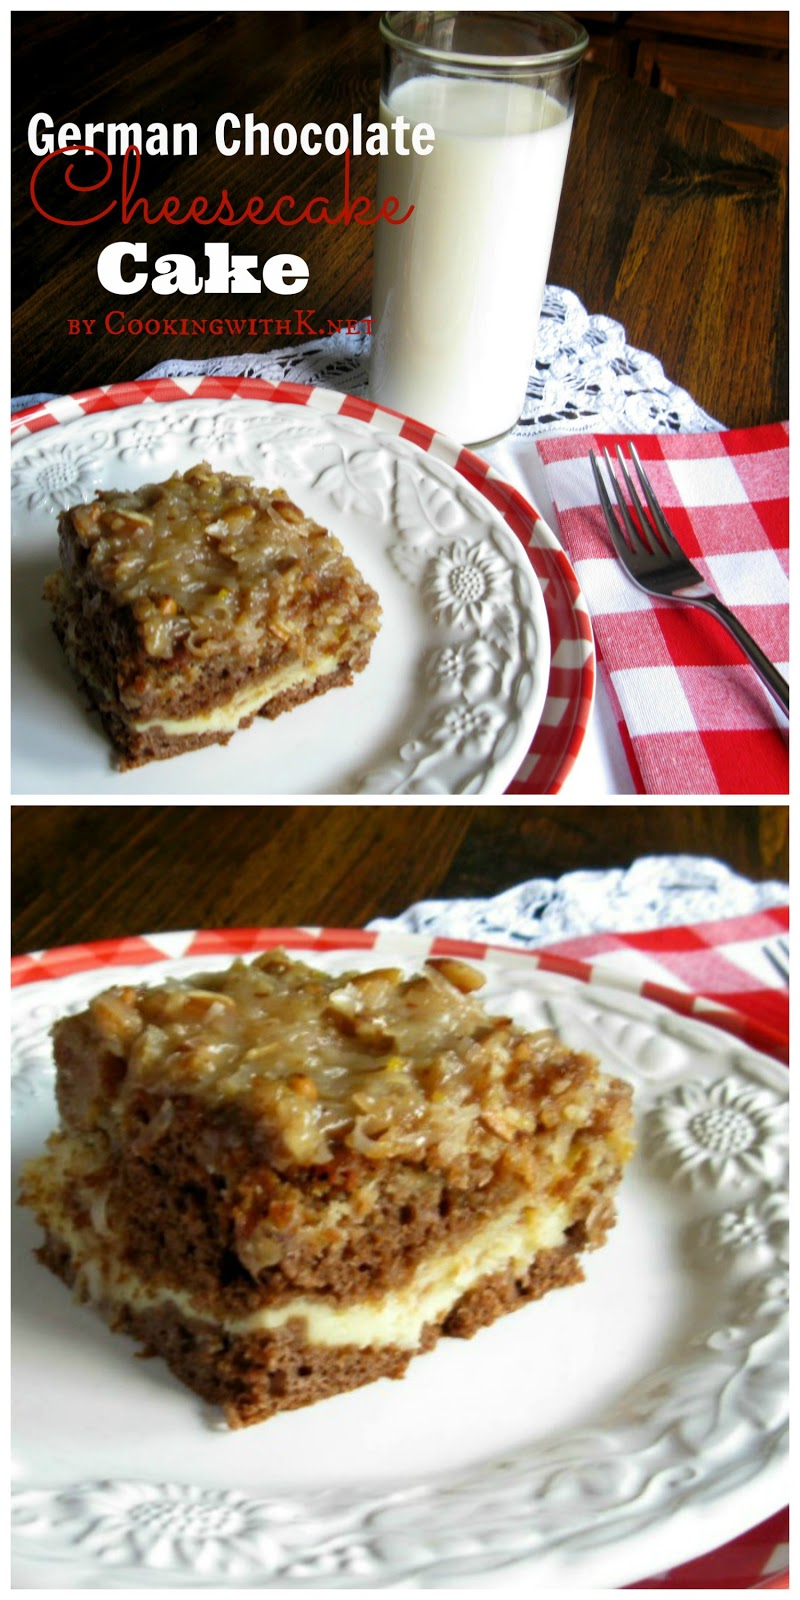 Cooking with K: German Chocolate Cheesecake Cake